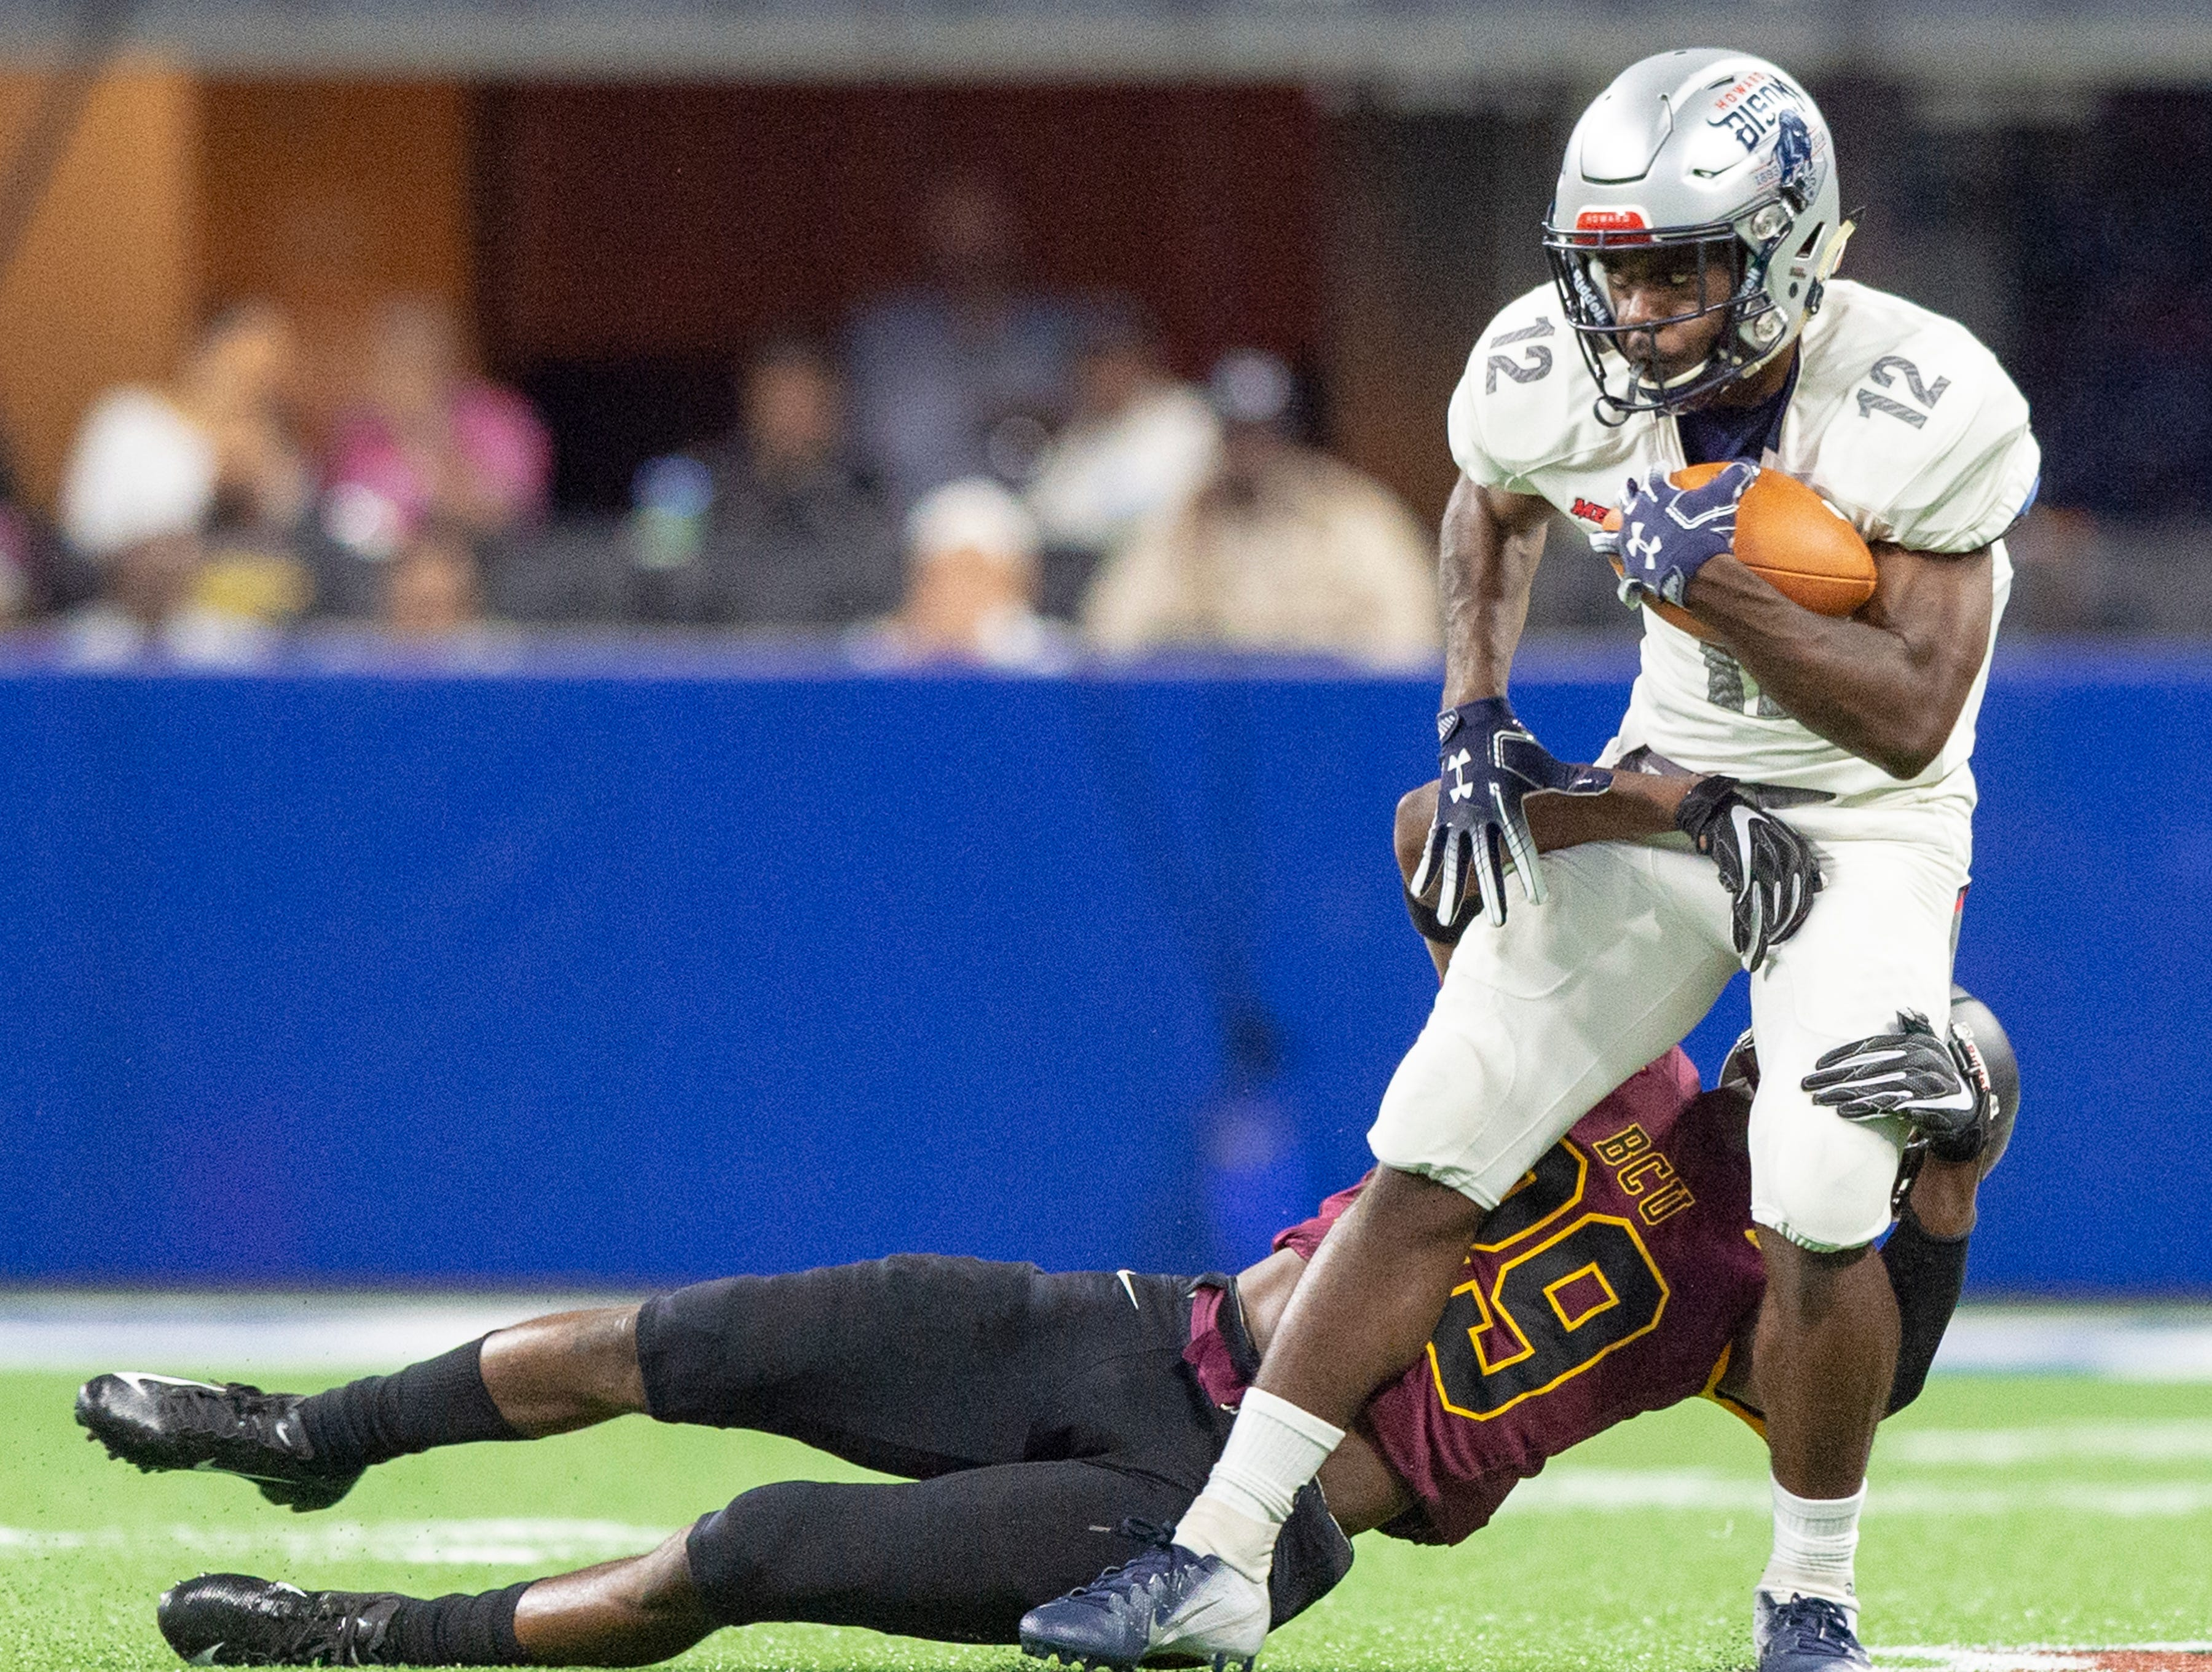 Howard Bison wide receiver Jequez Ezzard (12) tries to make a move upfield during the first half of action. Howard Bison took on Bethune Cookman Wildcats in the Circle City Classic game, Saturday, Sept. 22, 2018, at Lucas Oil Stadium.